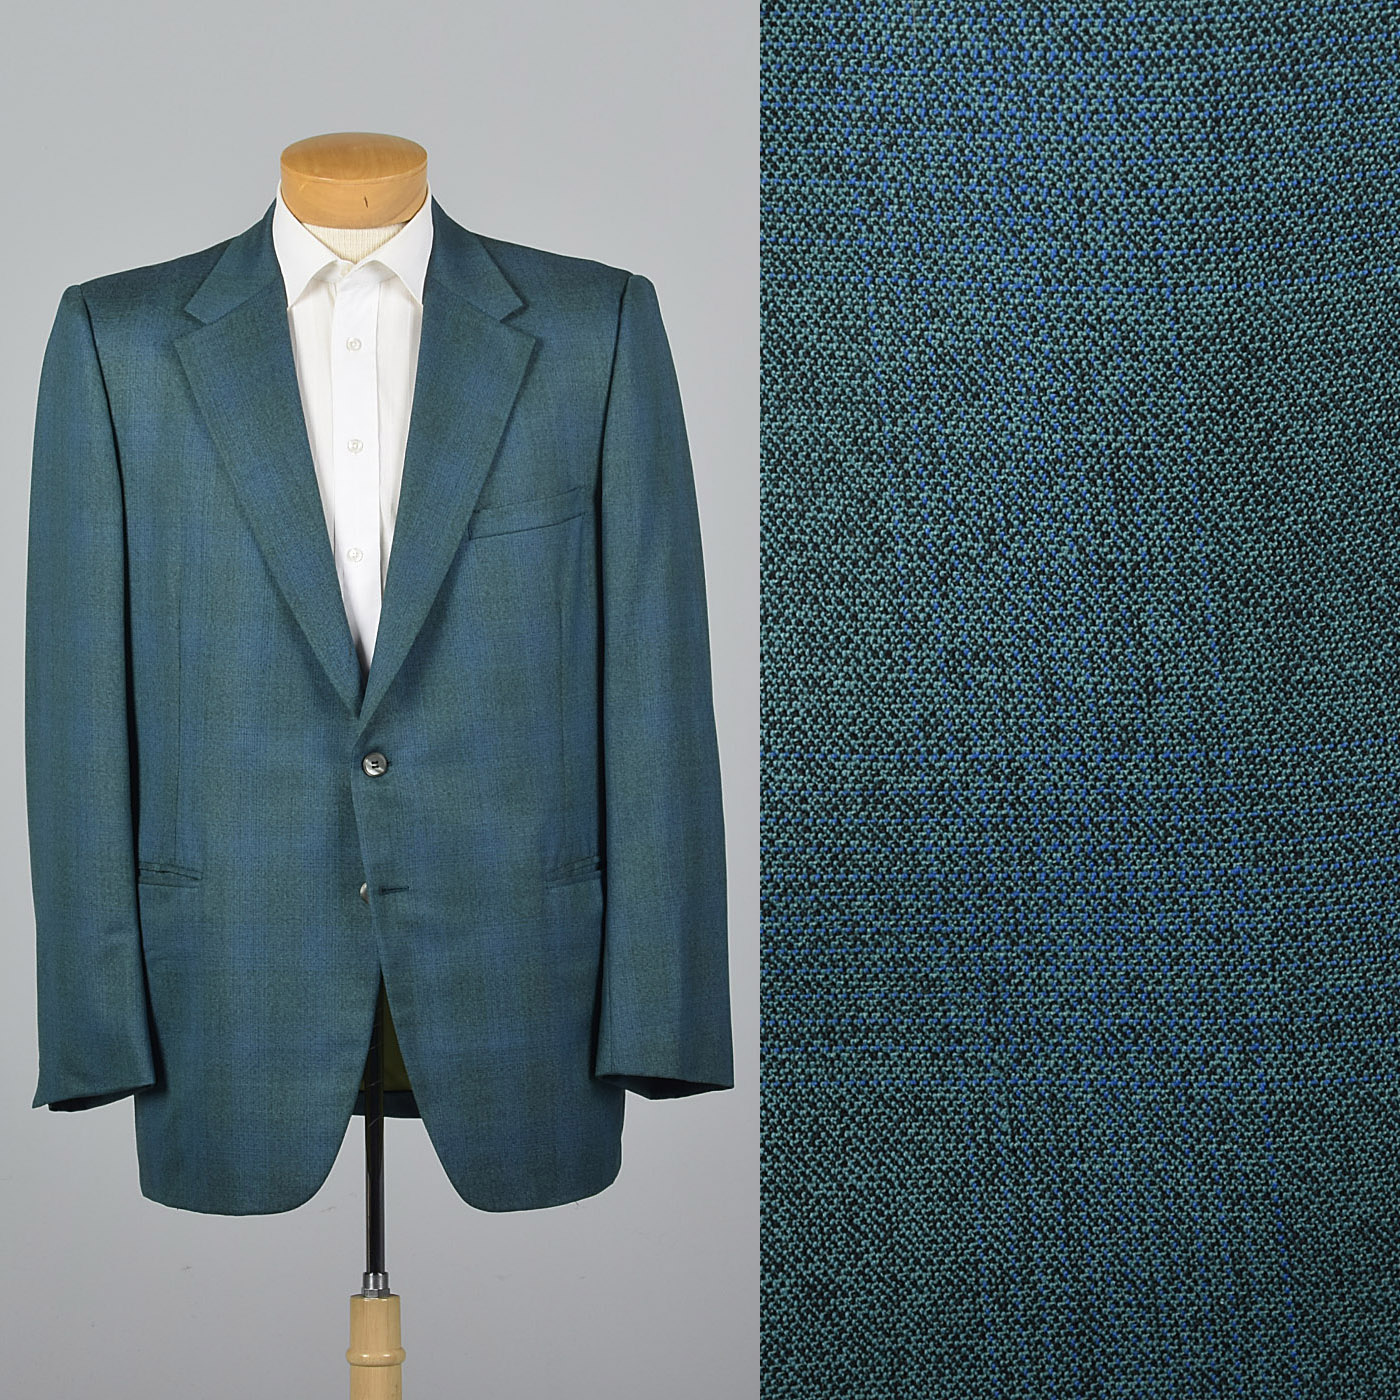 1970s Blue Green Stripe Jacket with Wide Lapels